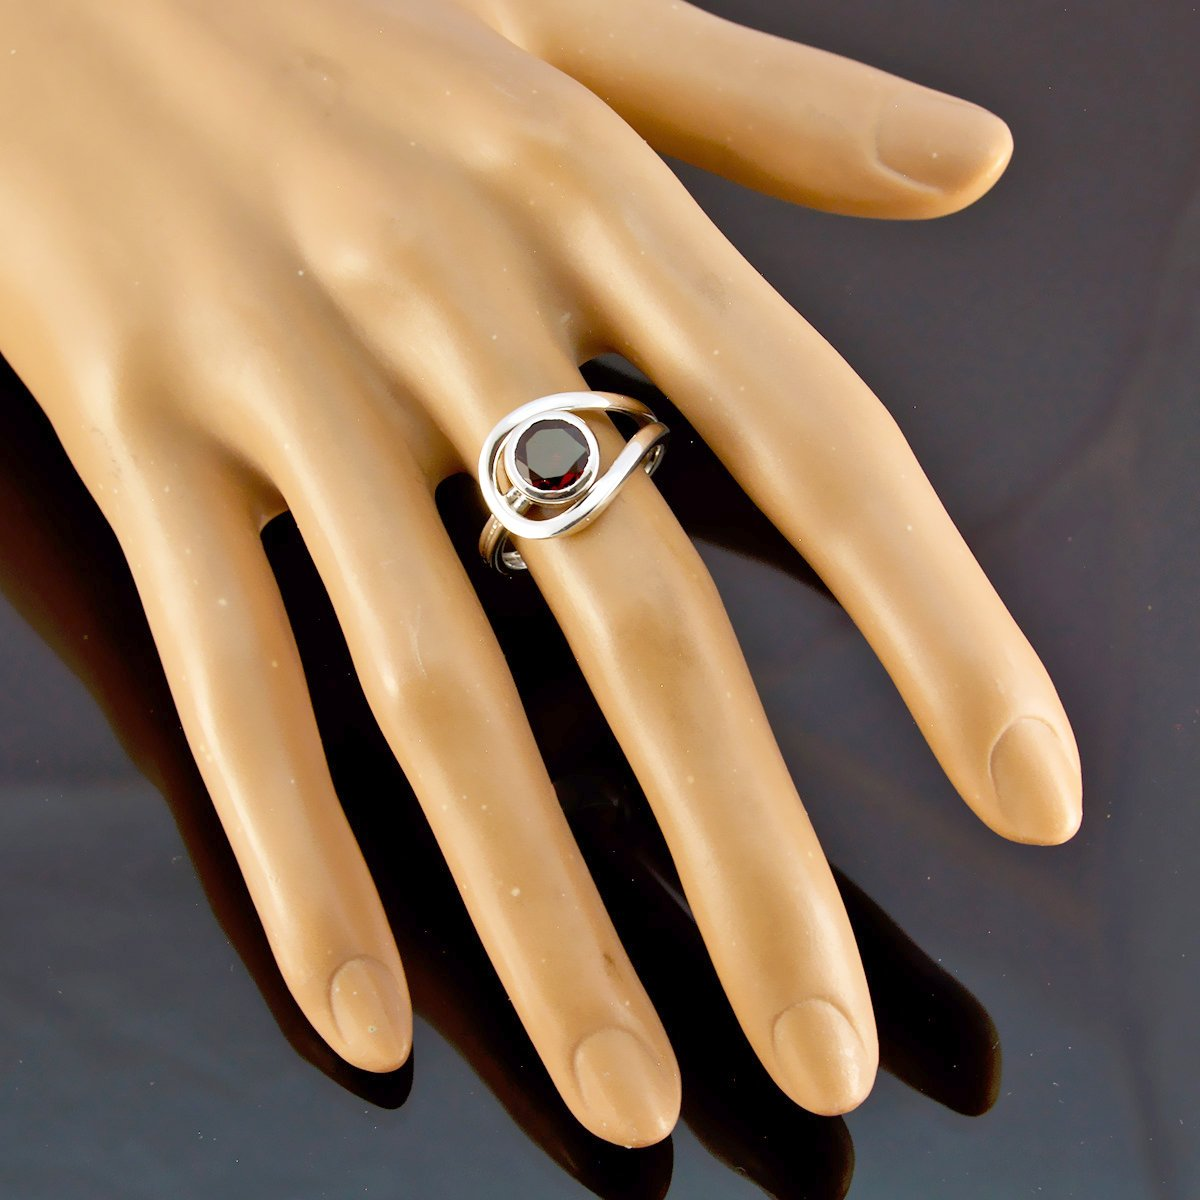 Nice Gemstone Round Faceted Garnets Rings - Solid Silber Red Garnets Nice Gemstone Ring - Supply Jewelry top Selling Shops Gift for Teachers Day Modern Stacking Ring -US 14.5 by RGPL (Image #2)